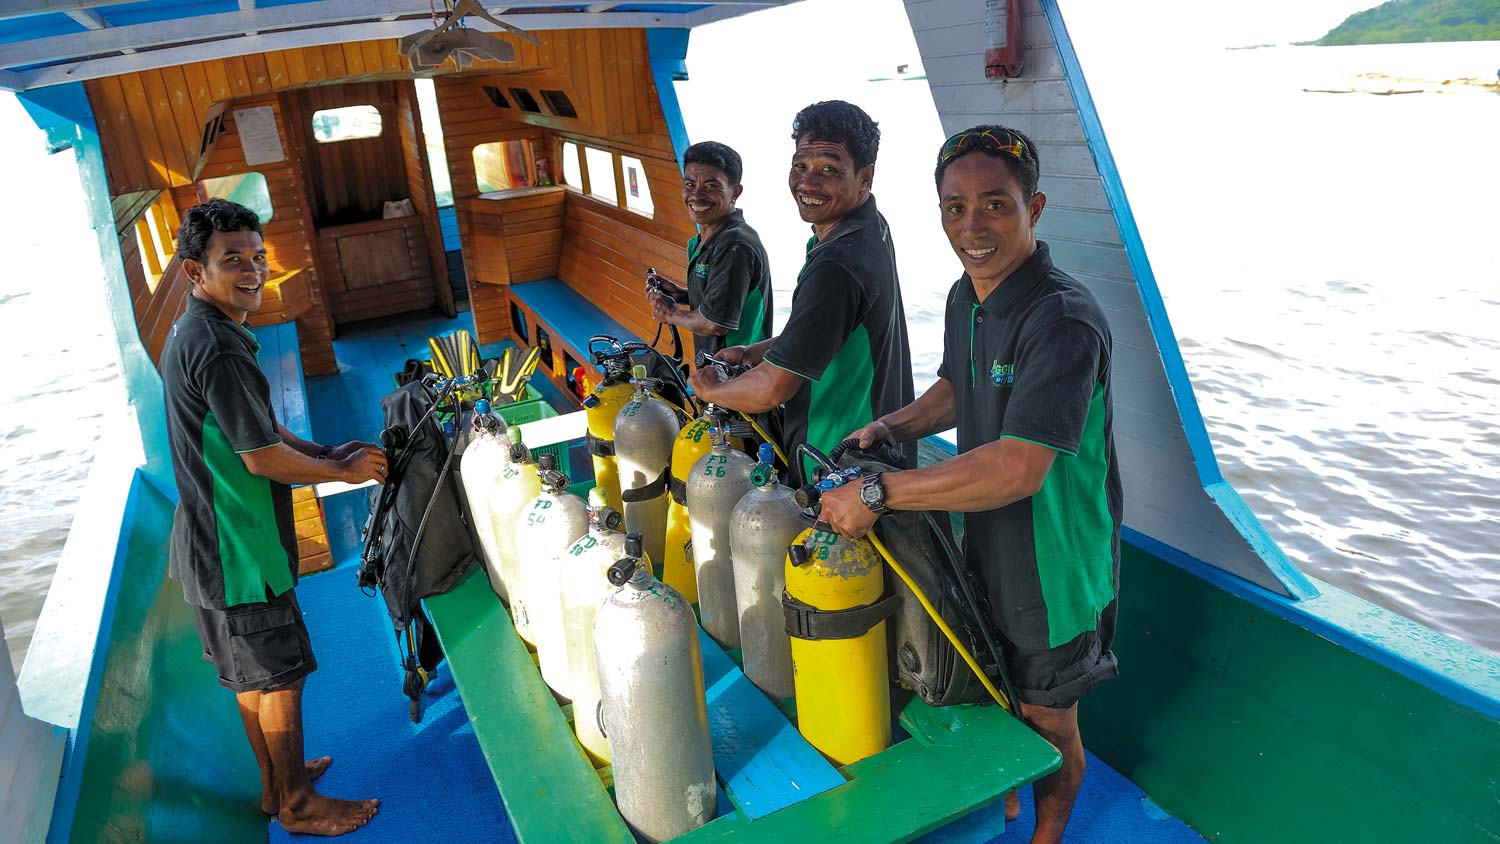 Bunaken_Diving_1.jpg